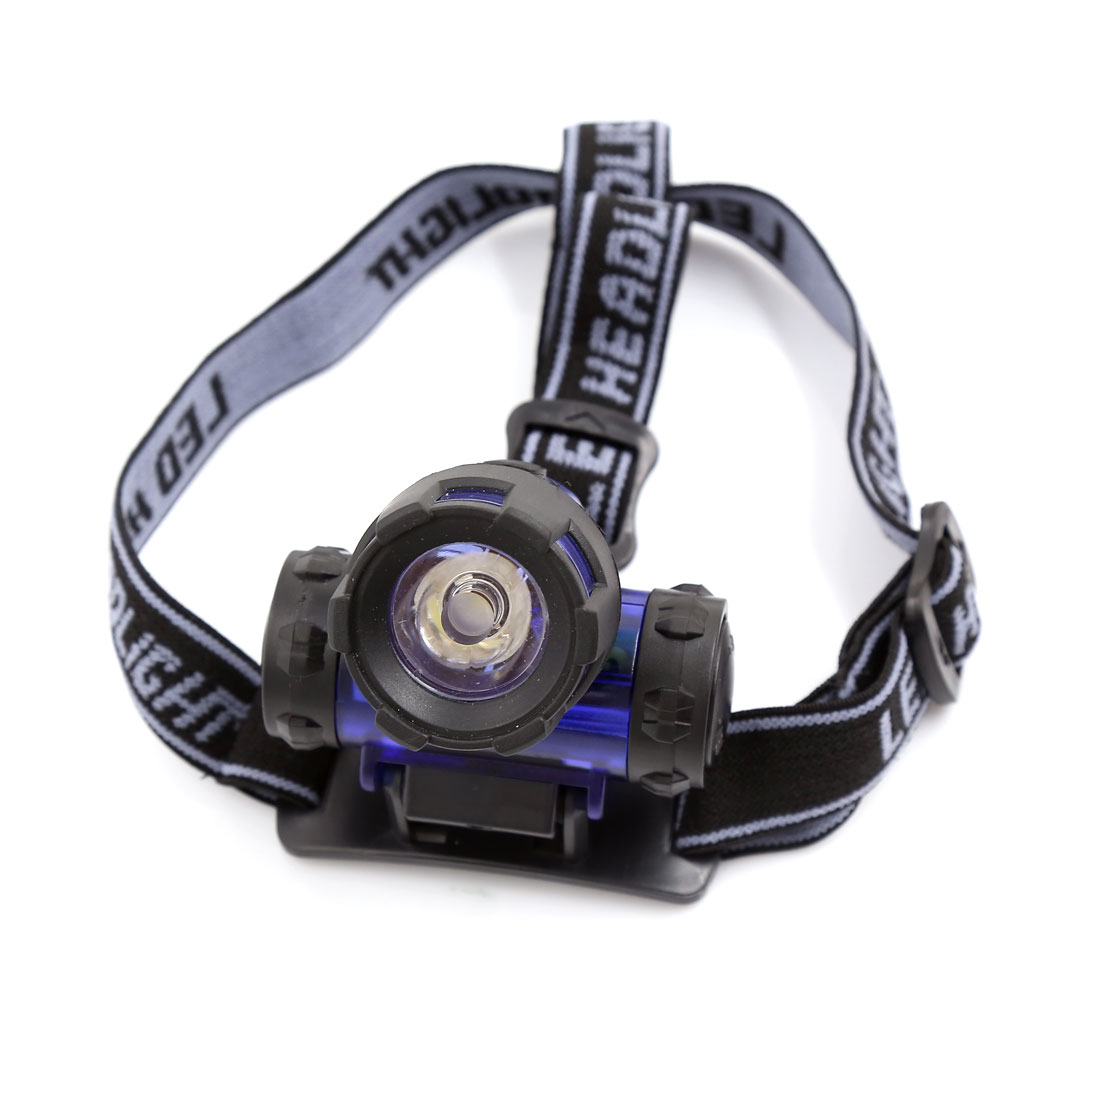 3W White LED Adjustable Angle Elastic Strap Headlight Headlamp Torch for Camping